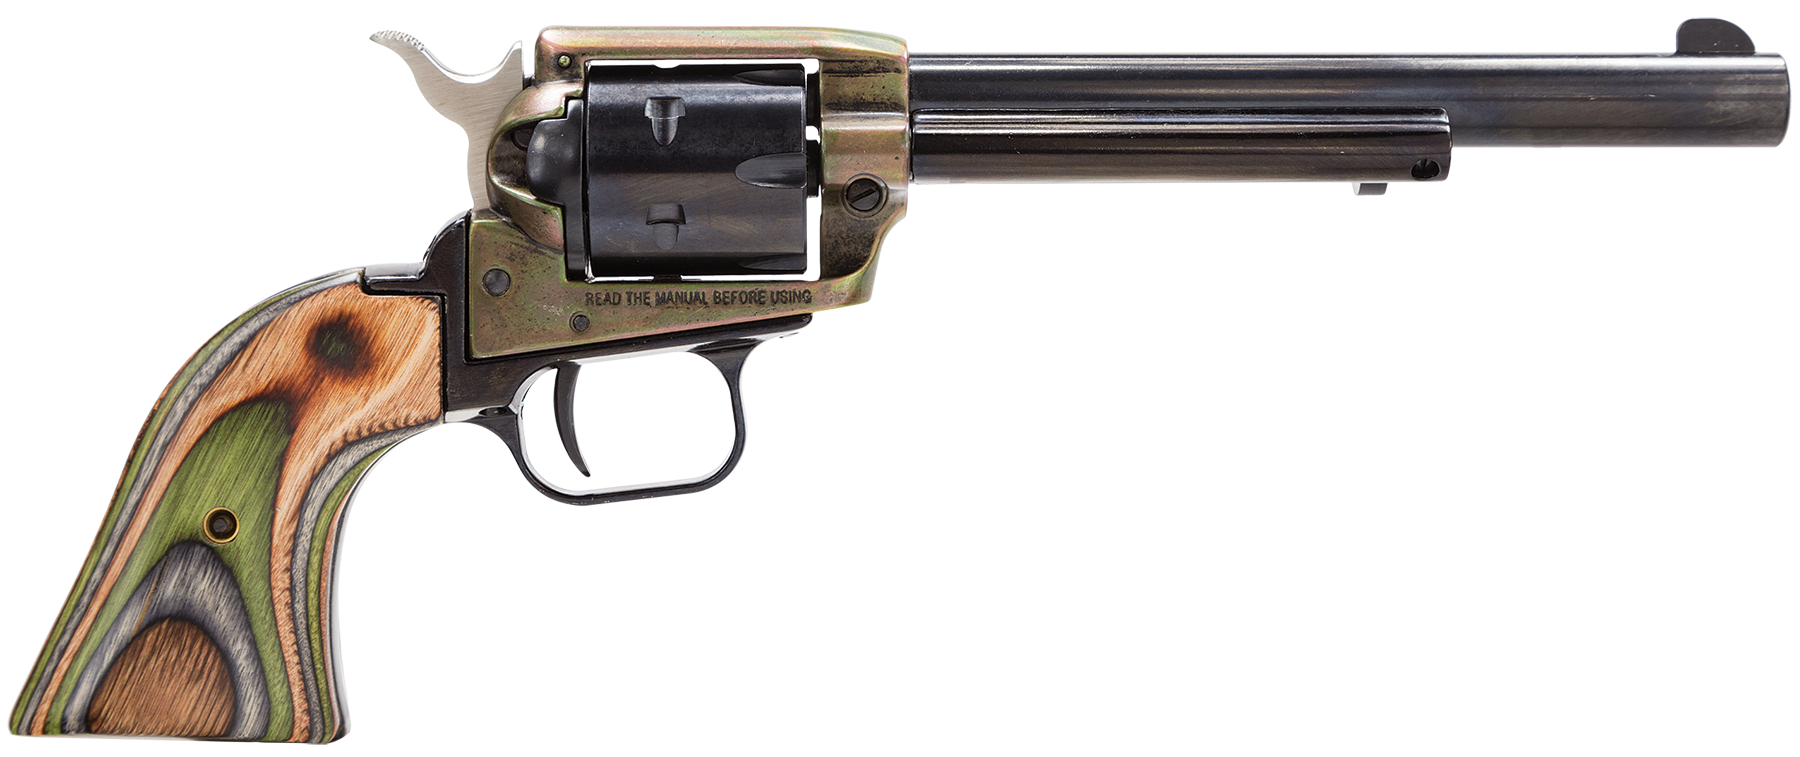 Heritage Mfg RR22CH6 Rough Rider Small Bore Single 22 Long Rifle 6.5